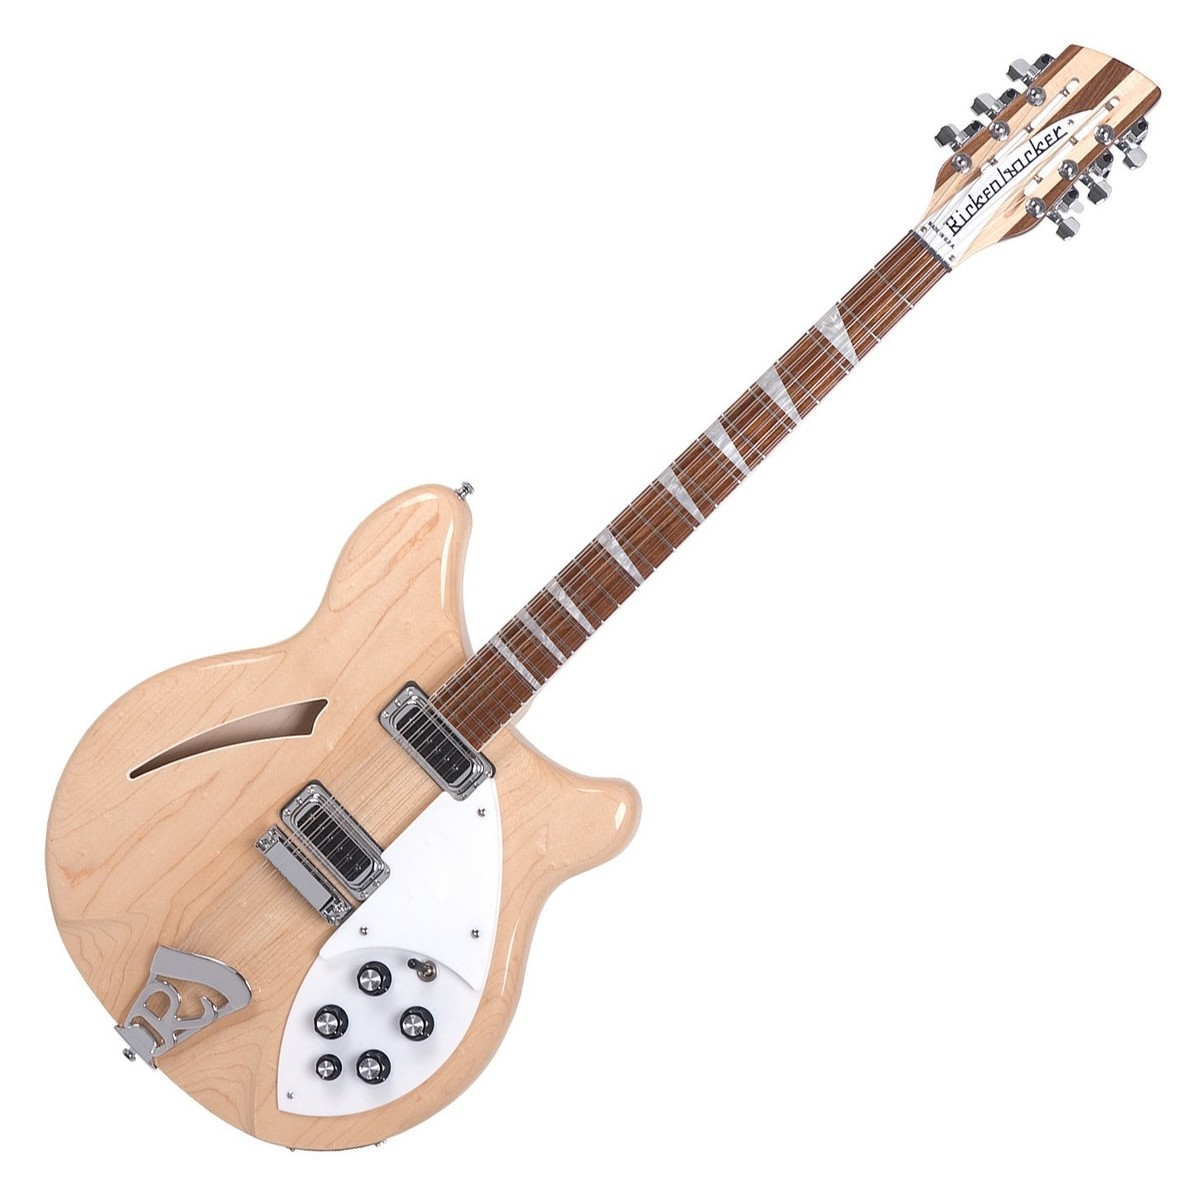 special order rickenbacker 360 12 string electric guitar mapleglo at. Black Bedroom Furniture Sets. Home Design Ideas